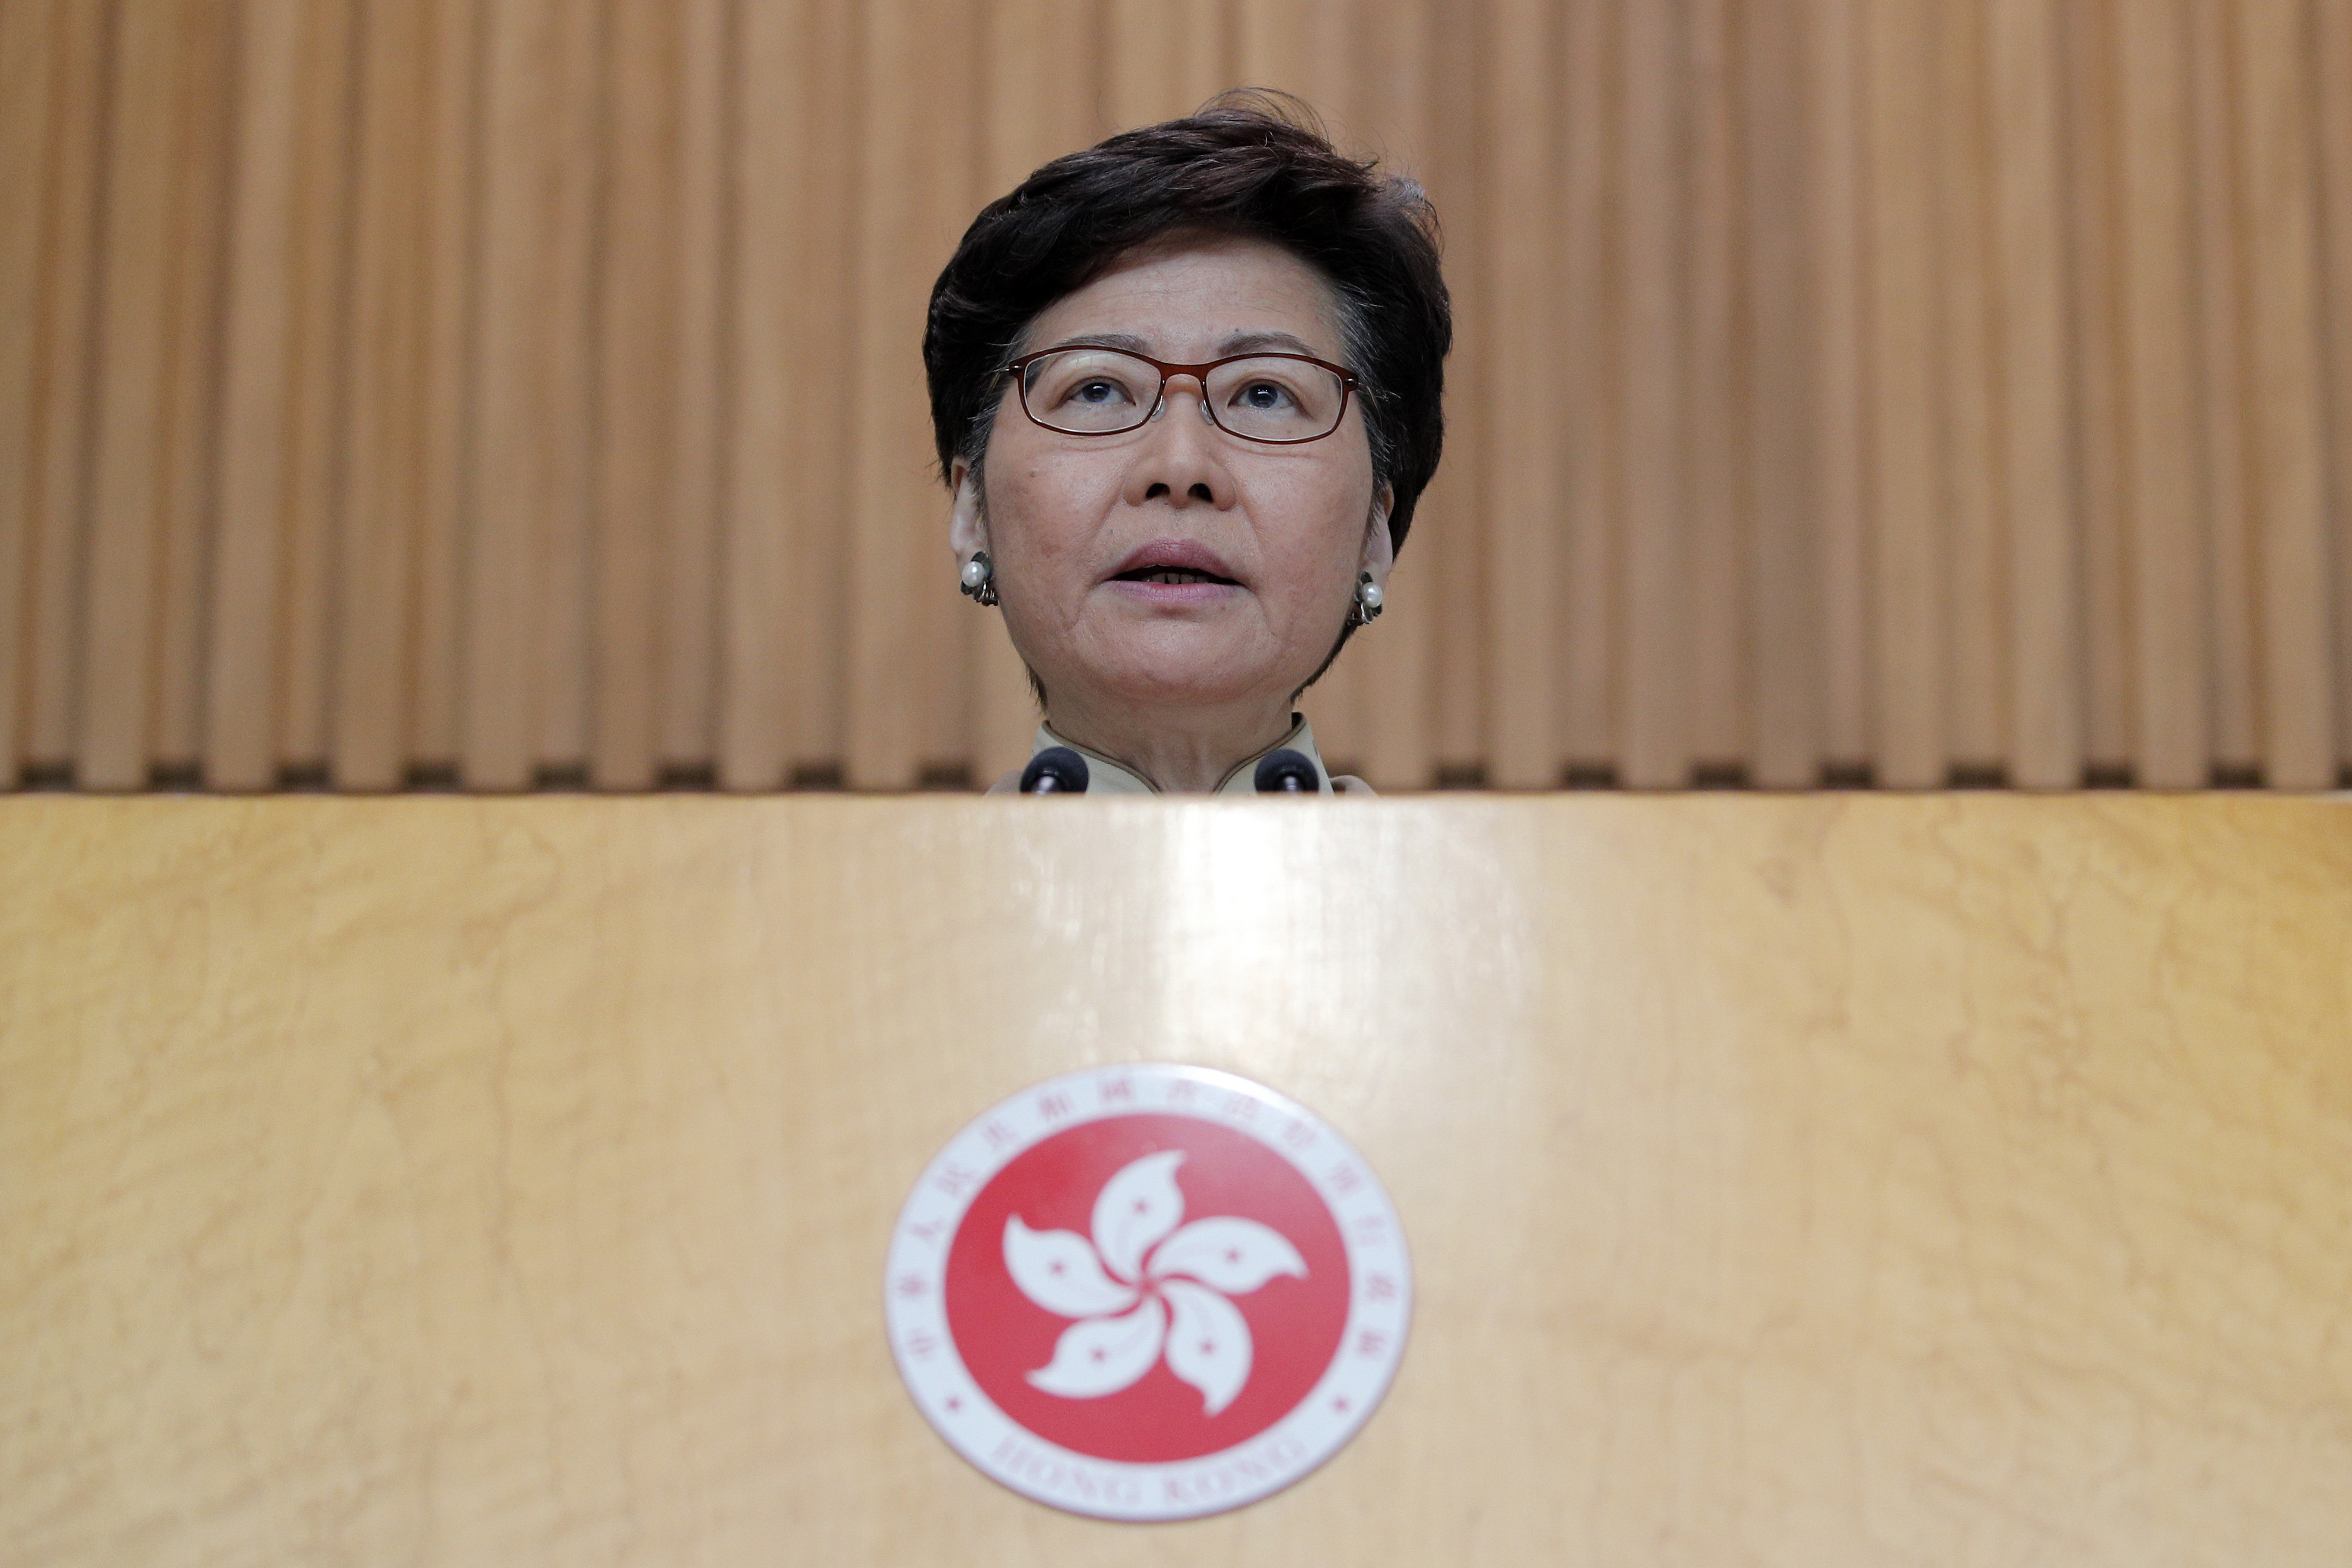 Hong Kong leader says new year will be a challenging one